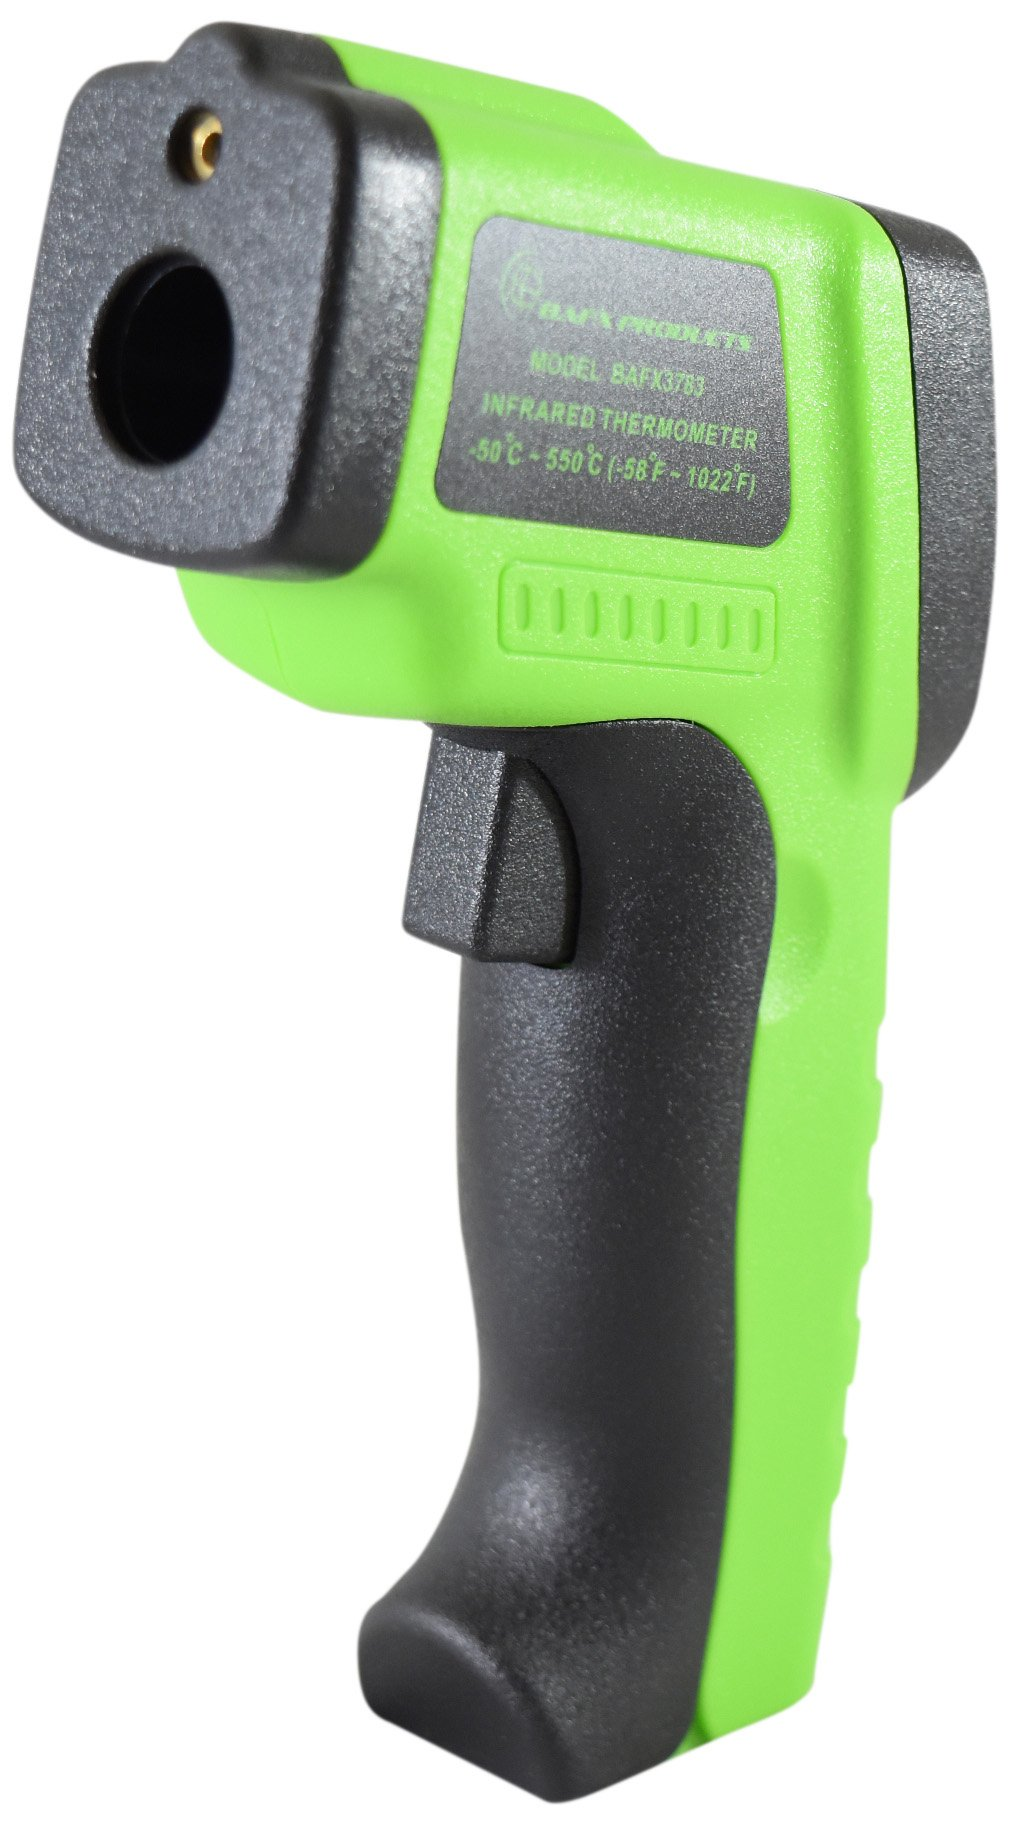 BAFX Products Non Contact IR (Infrared) Thermometer (-58°~+1,022°F) W/ Adjustable Emissivity & Pointer